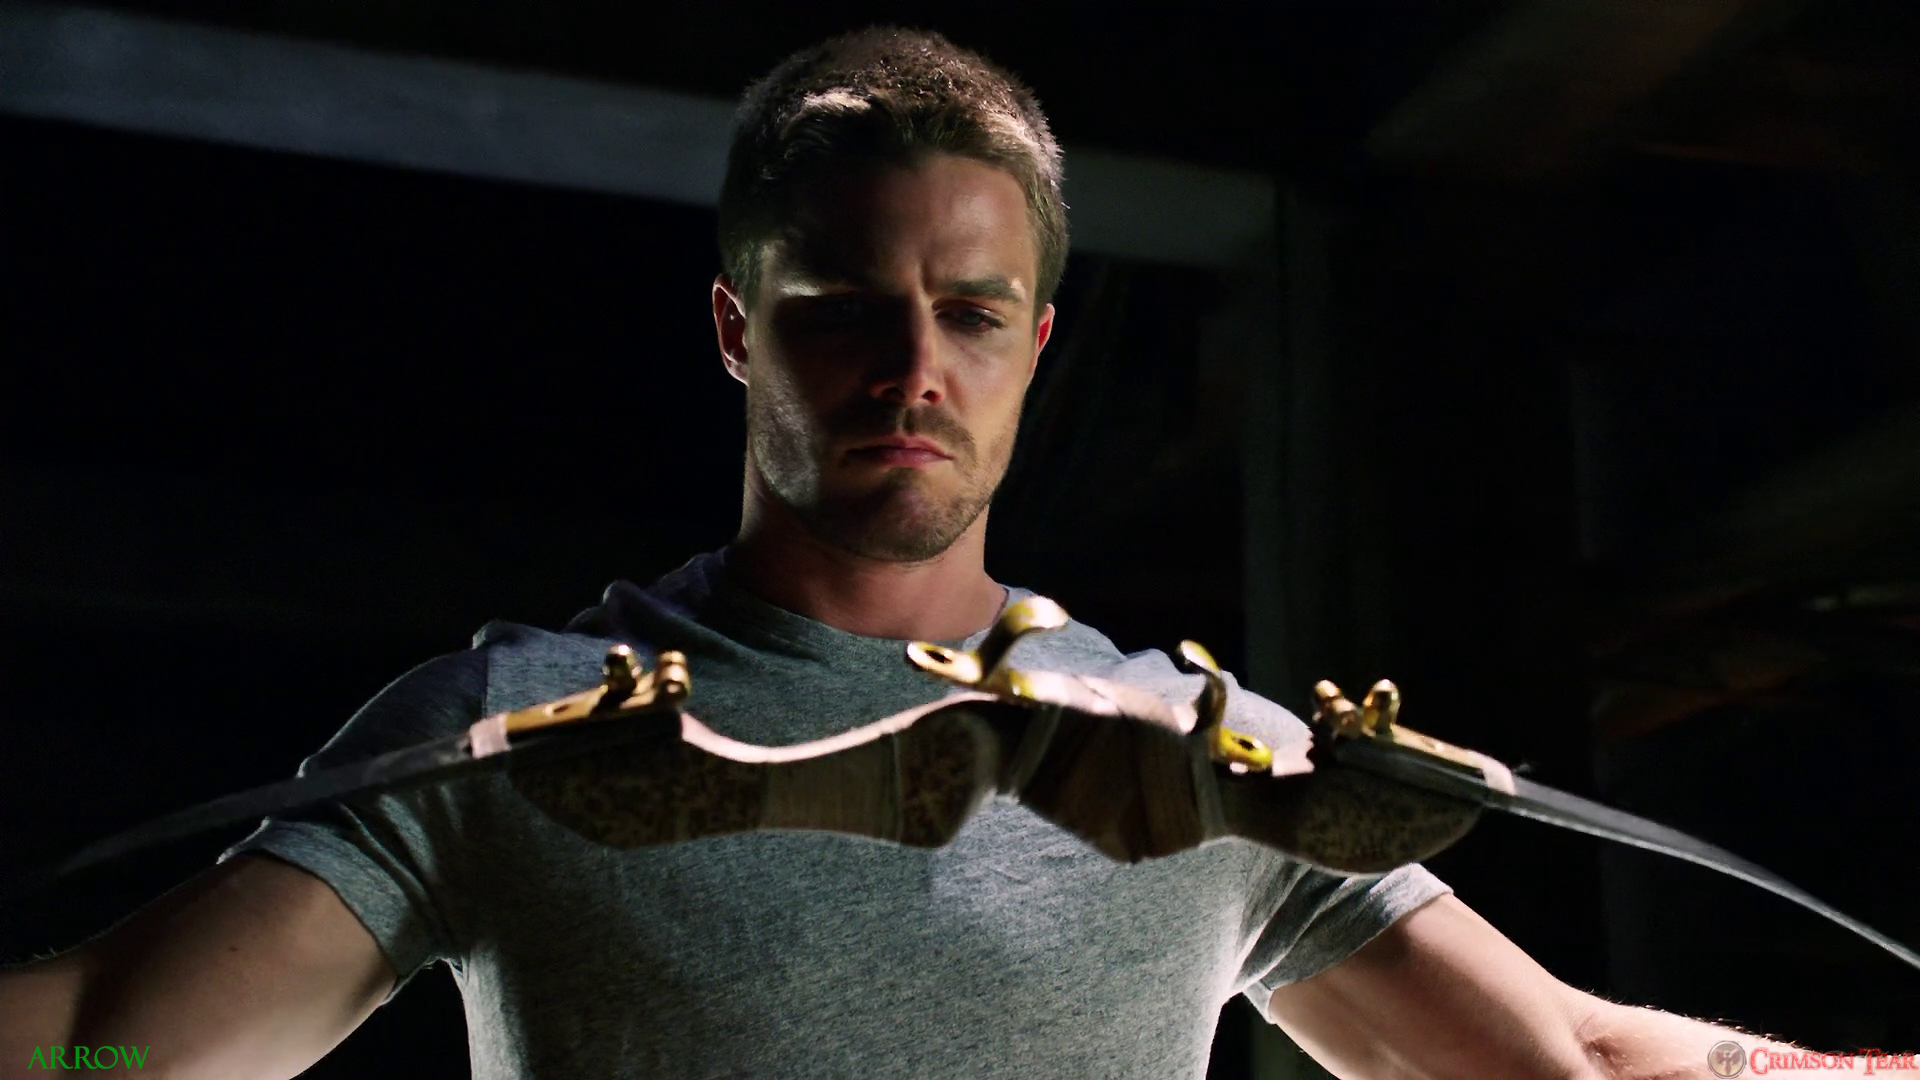 arrow cw tv show - photo #18